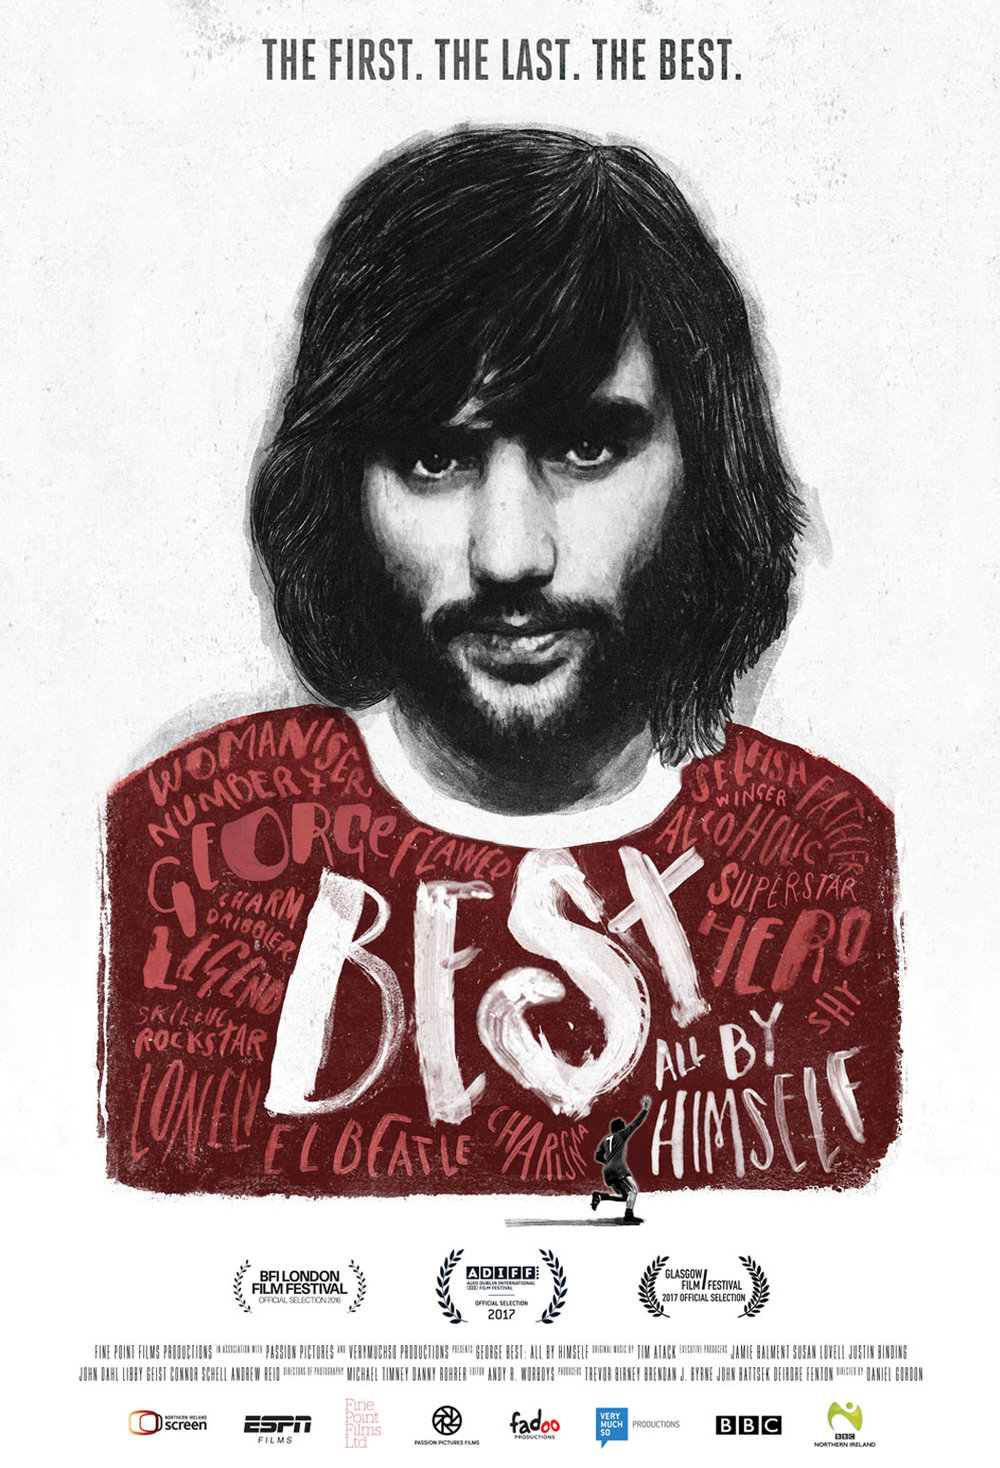 GeorgeBest_Sized01.jpg